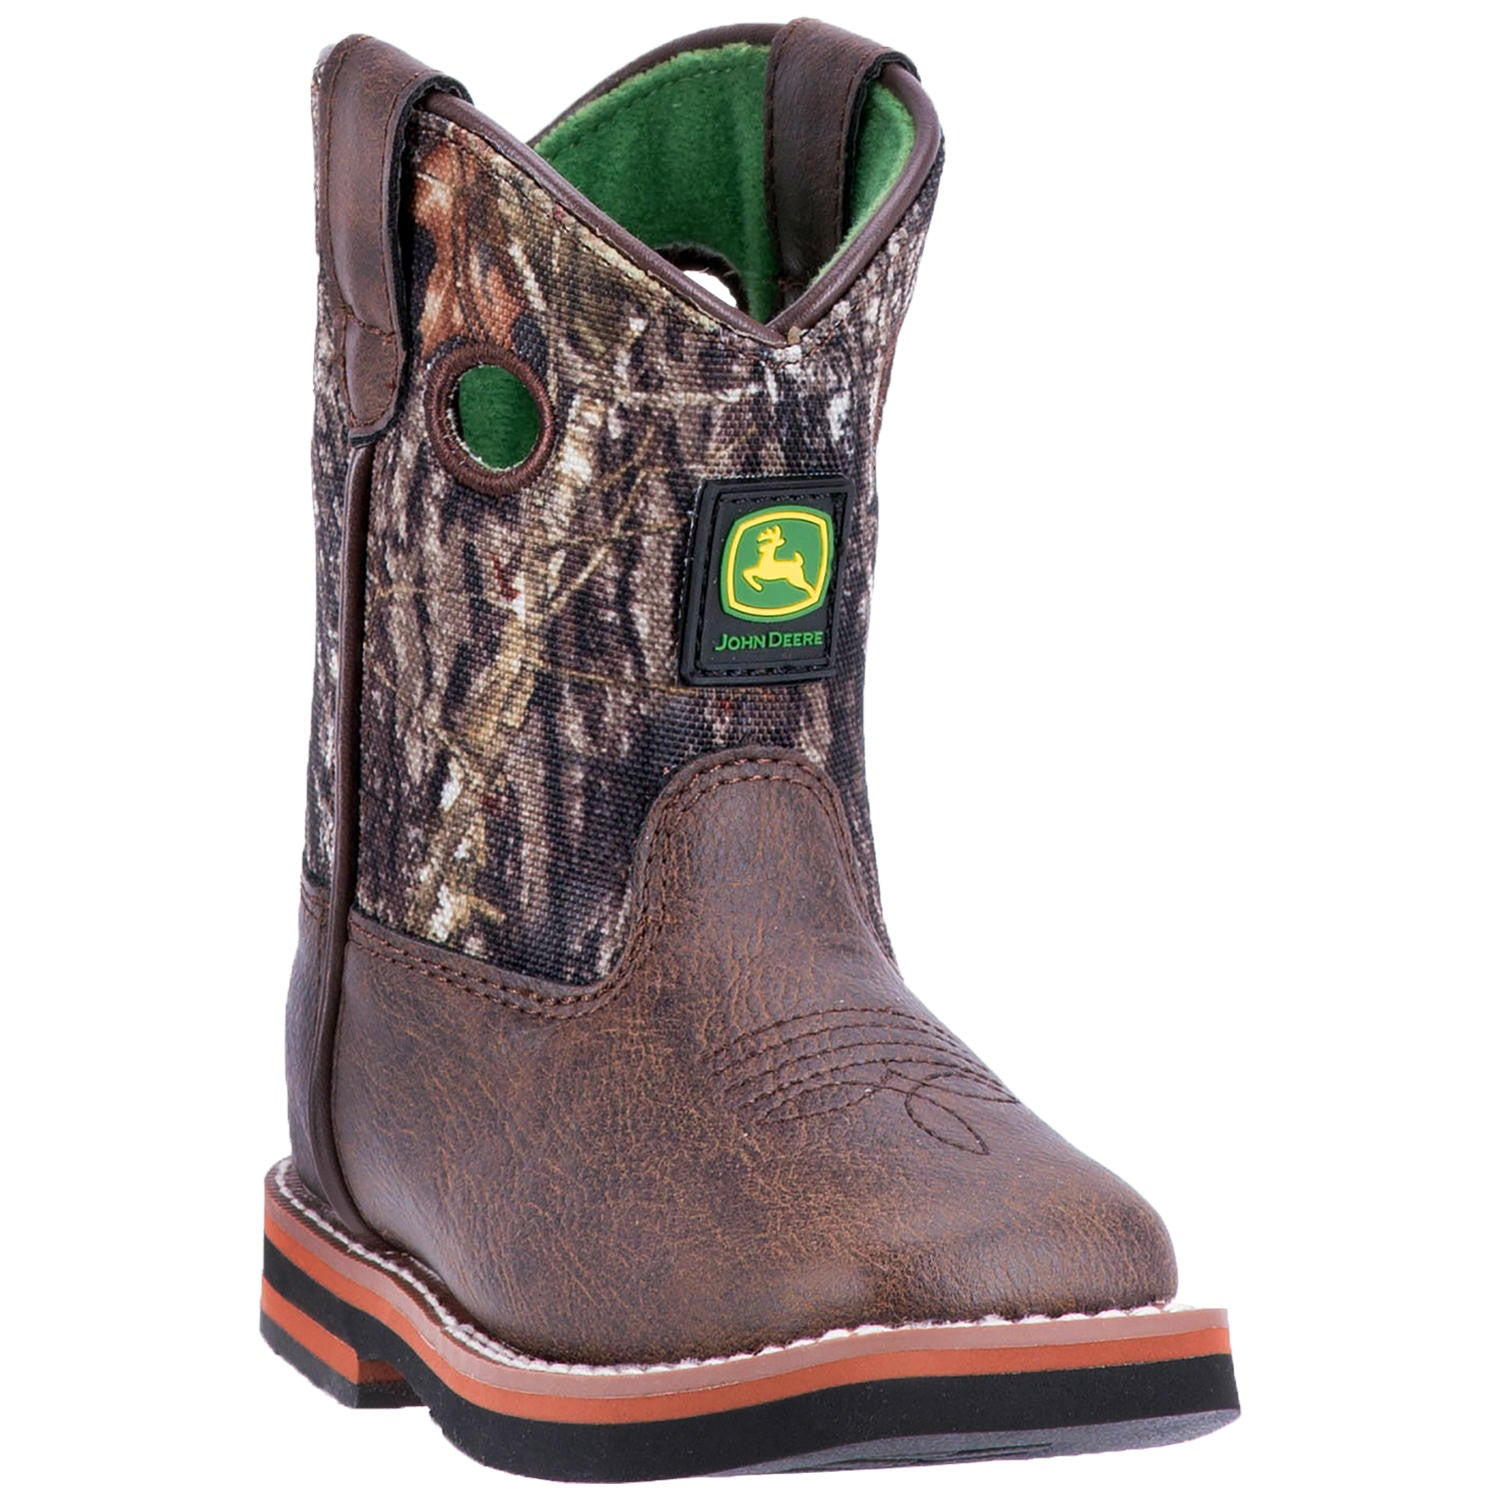 JOHN DEERE INFANT'S  MAN-MADE JOHNNY POPPER INFANT BROWN - MOSSY OAK